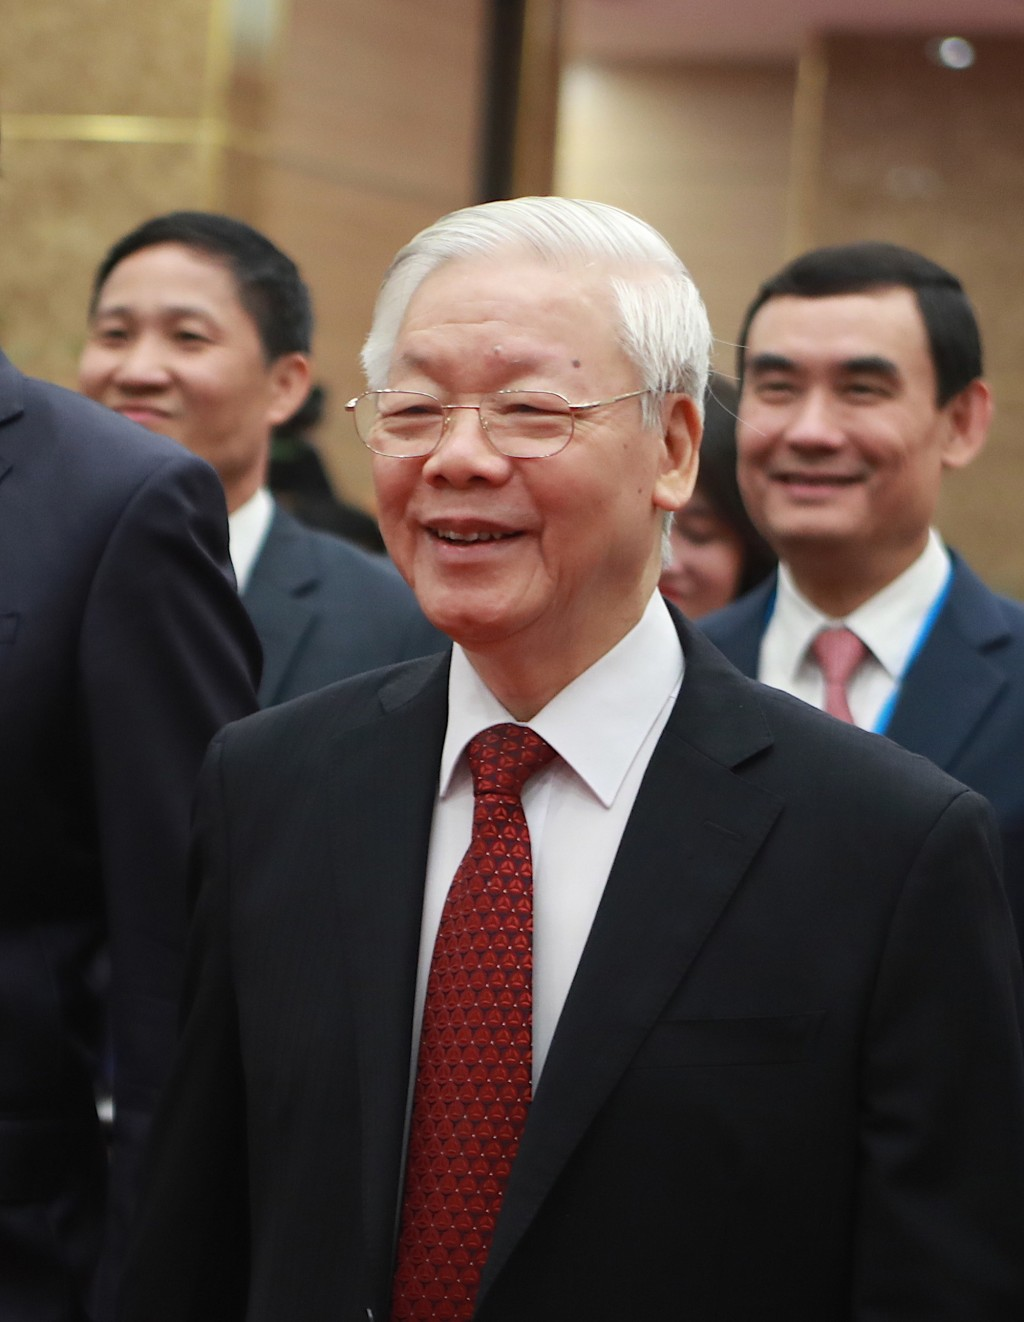 Vietnamese Communist Party General Secretary Nguyen Phu Trong arrives at the venue for the online ASEAN Summit in Hanoi, Vietnam on Thursday, Nov. 12,...